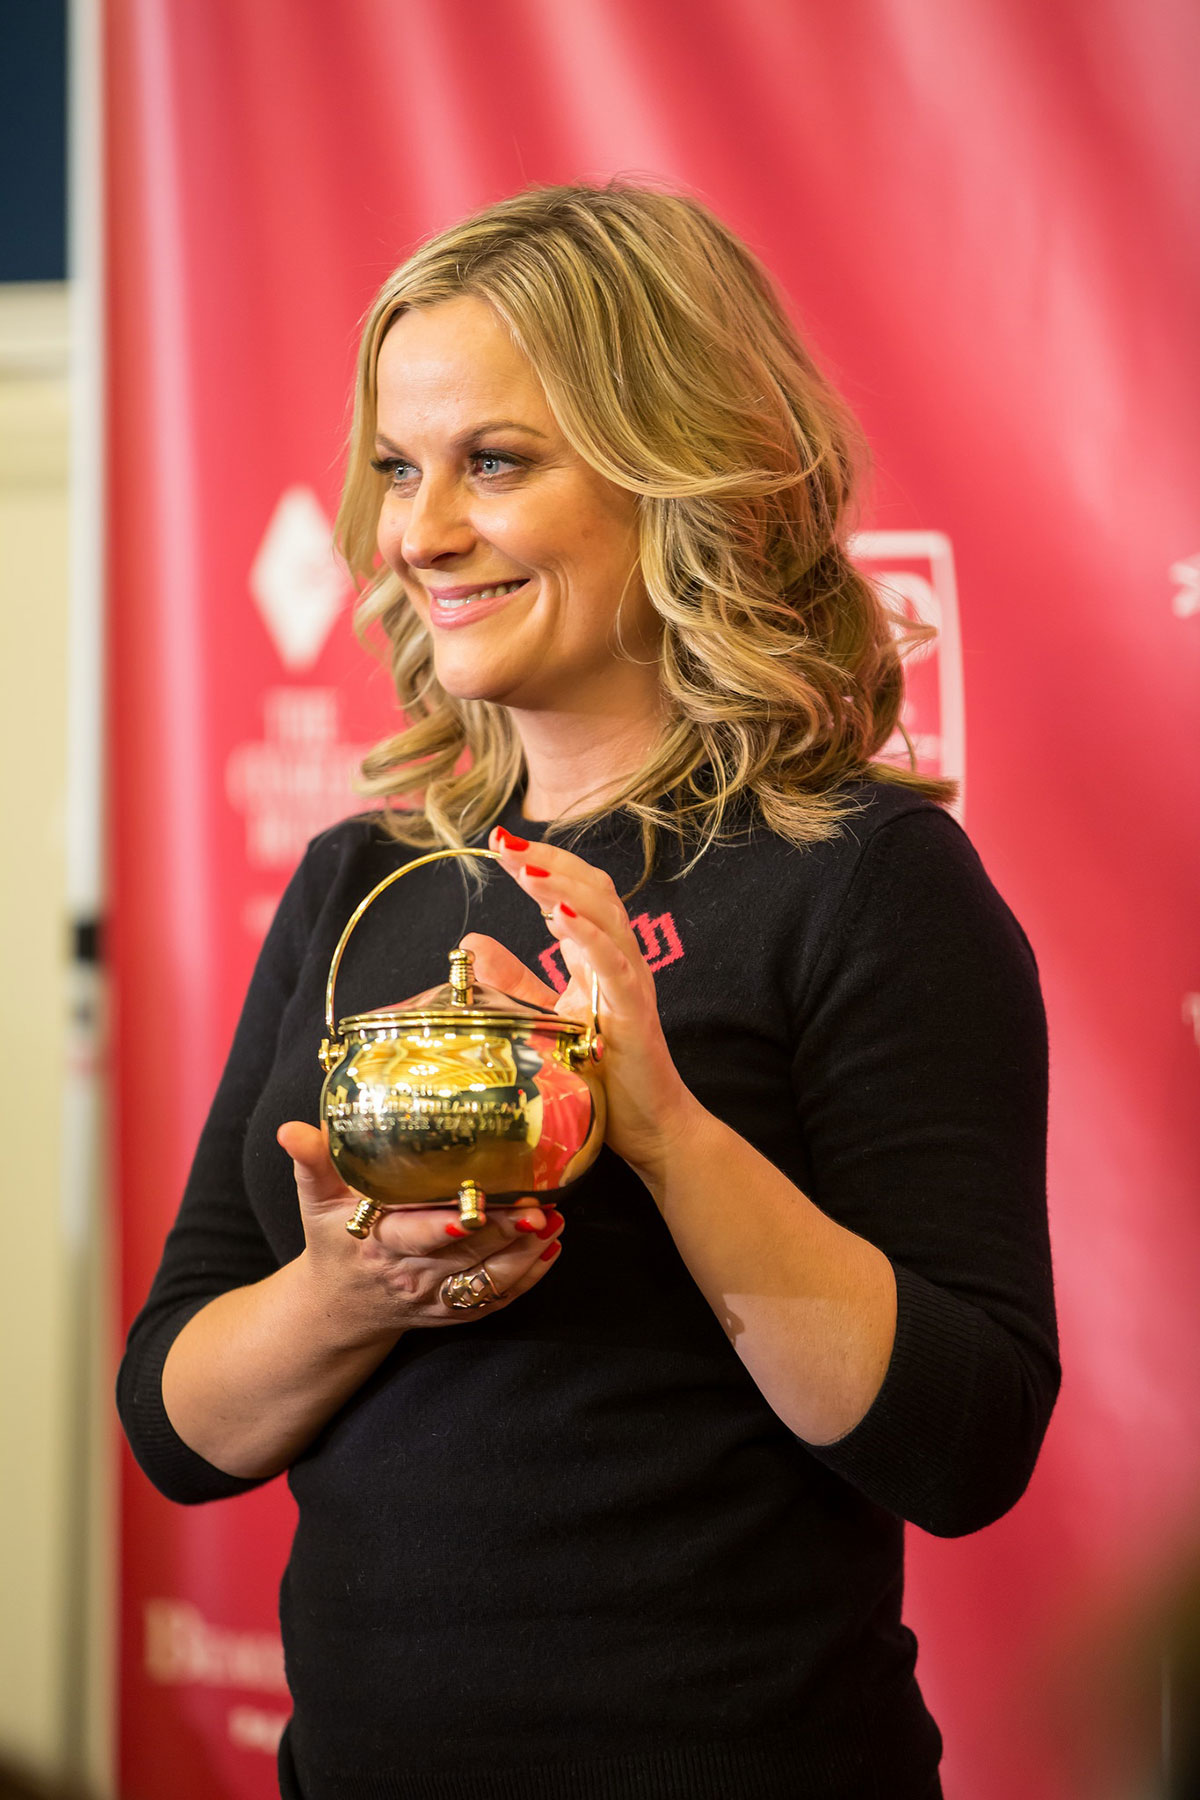 AMY POEHLER Receives the 2015 Hasty Pudding Award ...